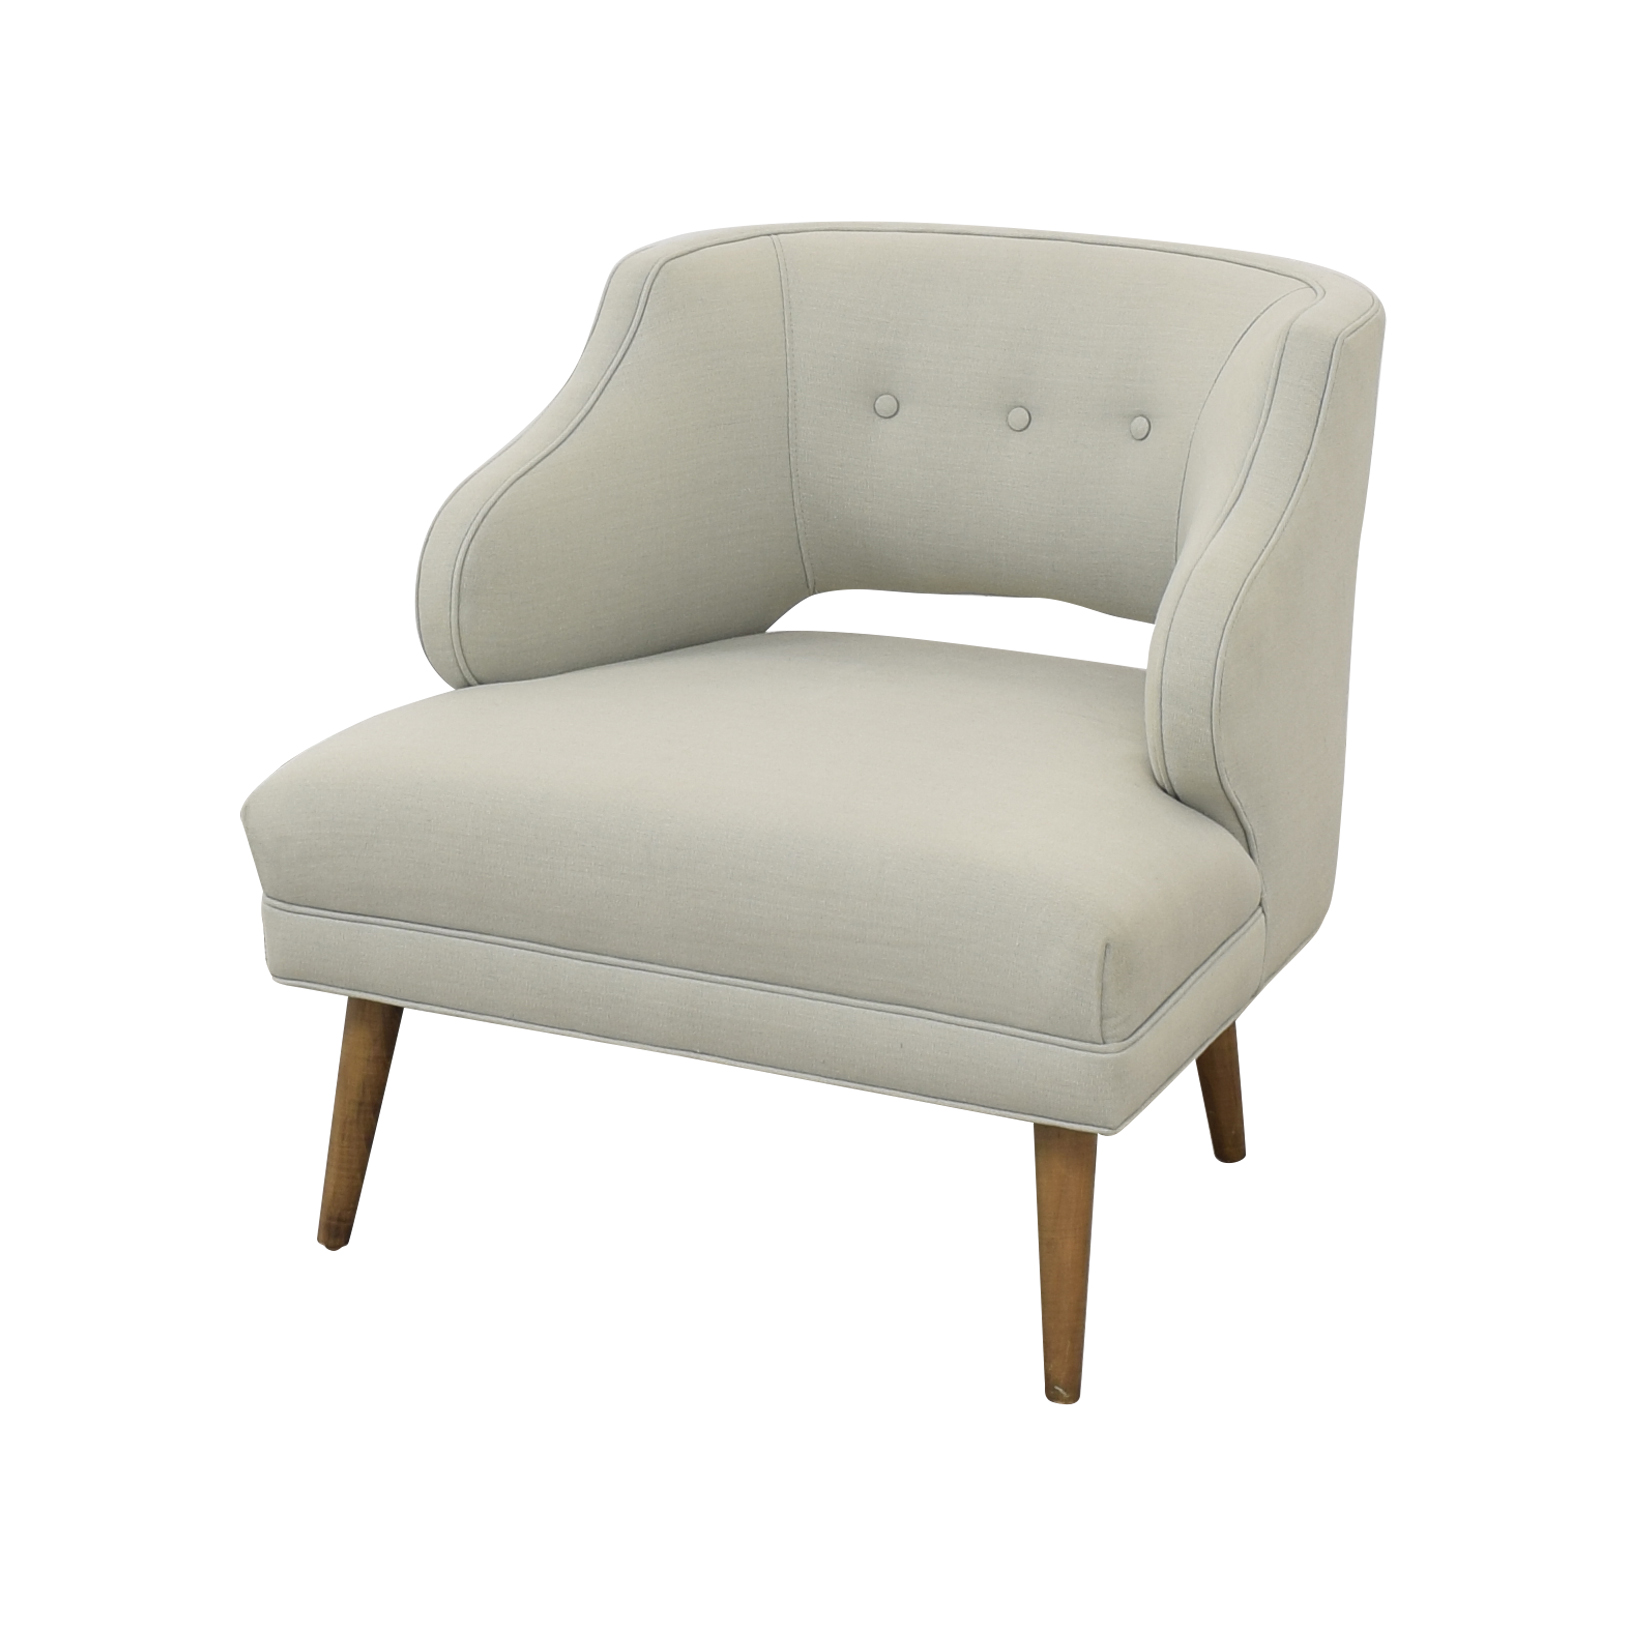 Precedent Furniture Precedent Accent Chair nj